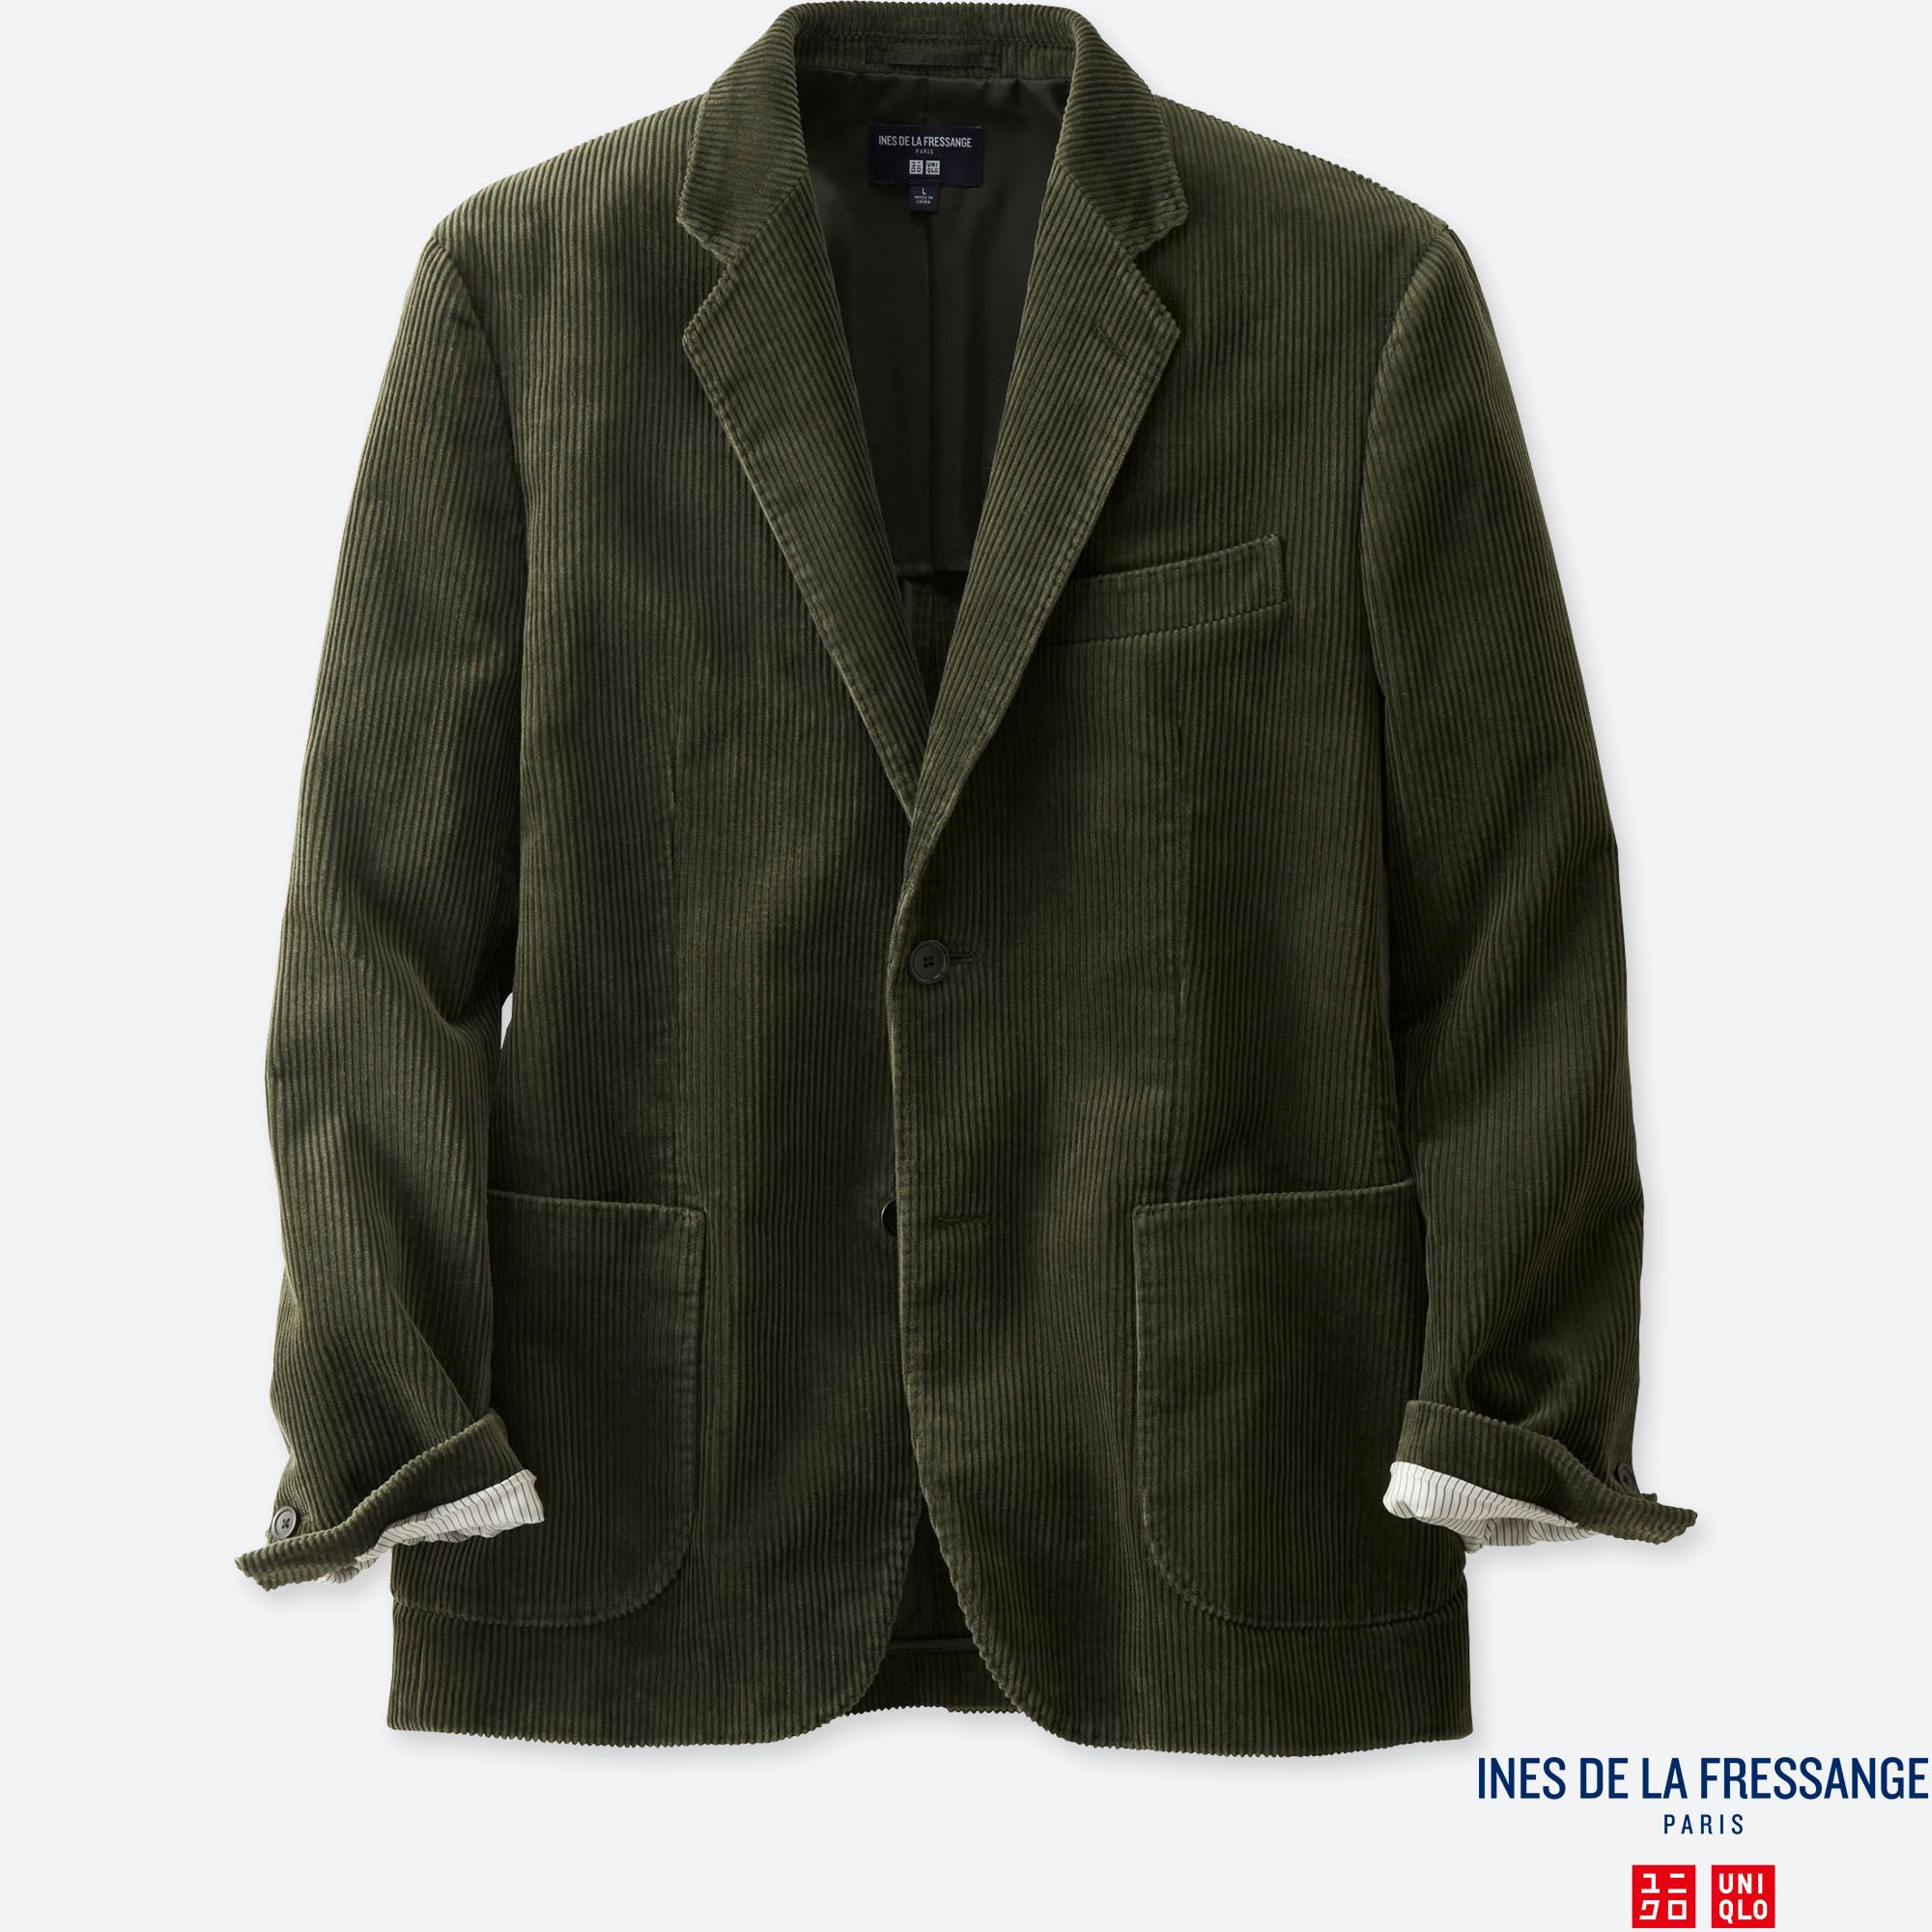 Men's Corduroy Jacket Coat